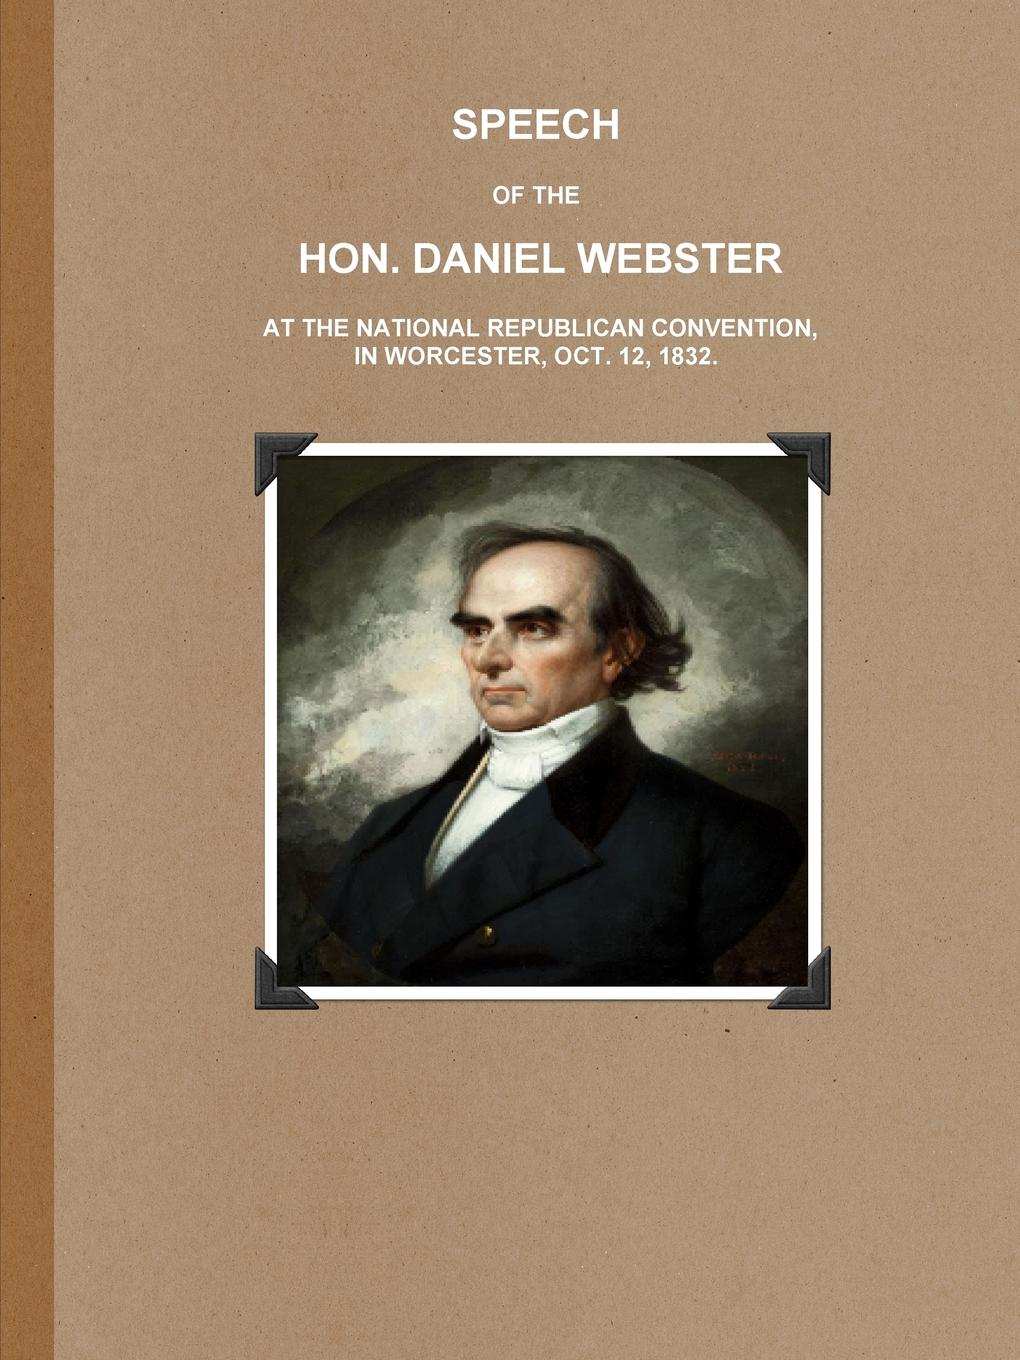 Daniel Webster SPEECH OF THE HON. DANIEL WEBSTER AT THE NATIONAL REPUBLICAN CONVENTION, IN WORCESTER, OCT. 12, 1832. daniel webster the works of daniel webster volume 1